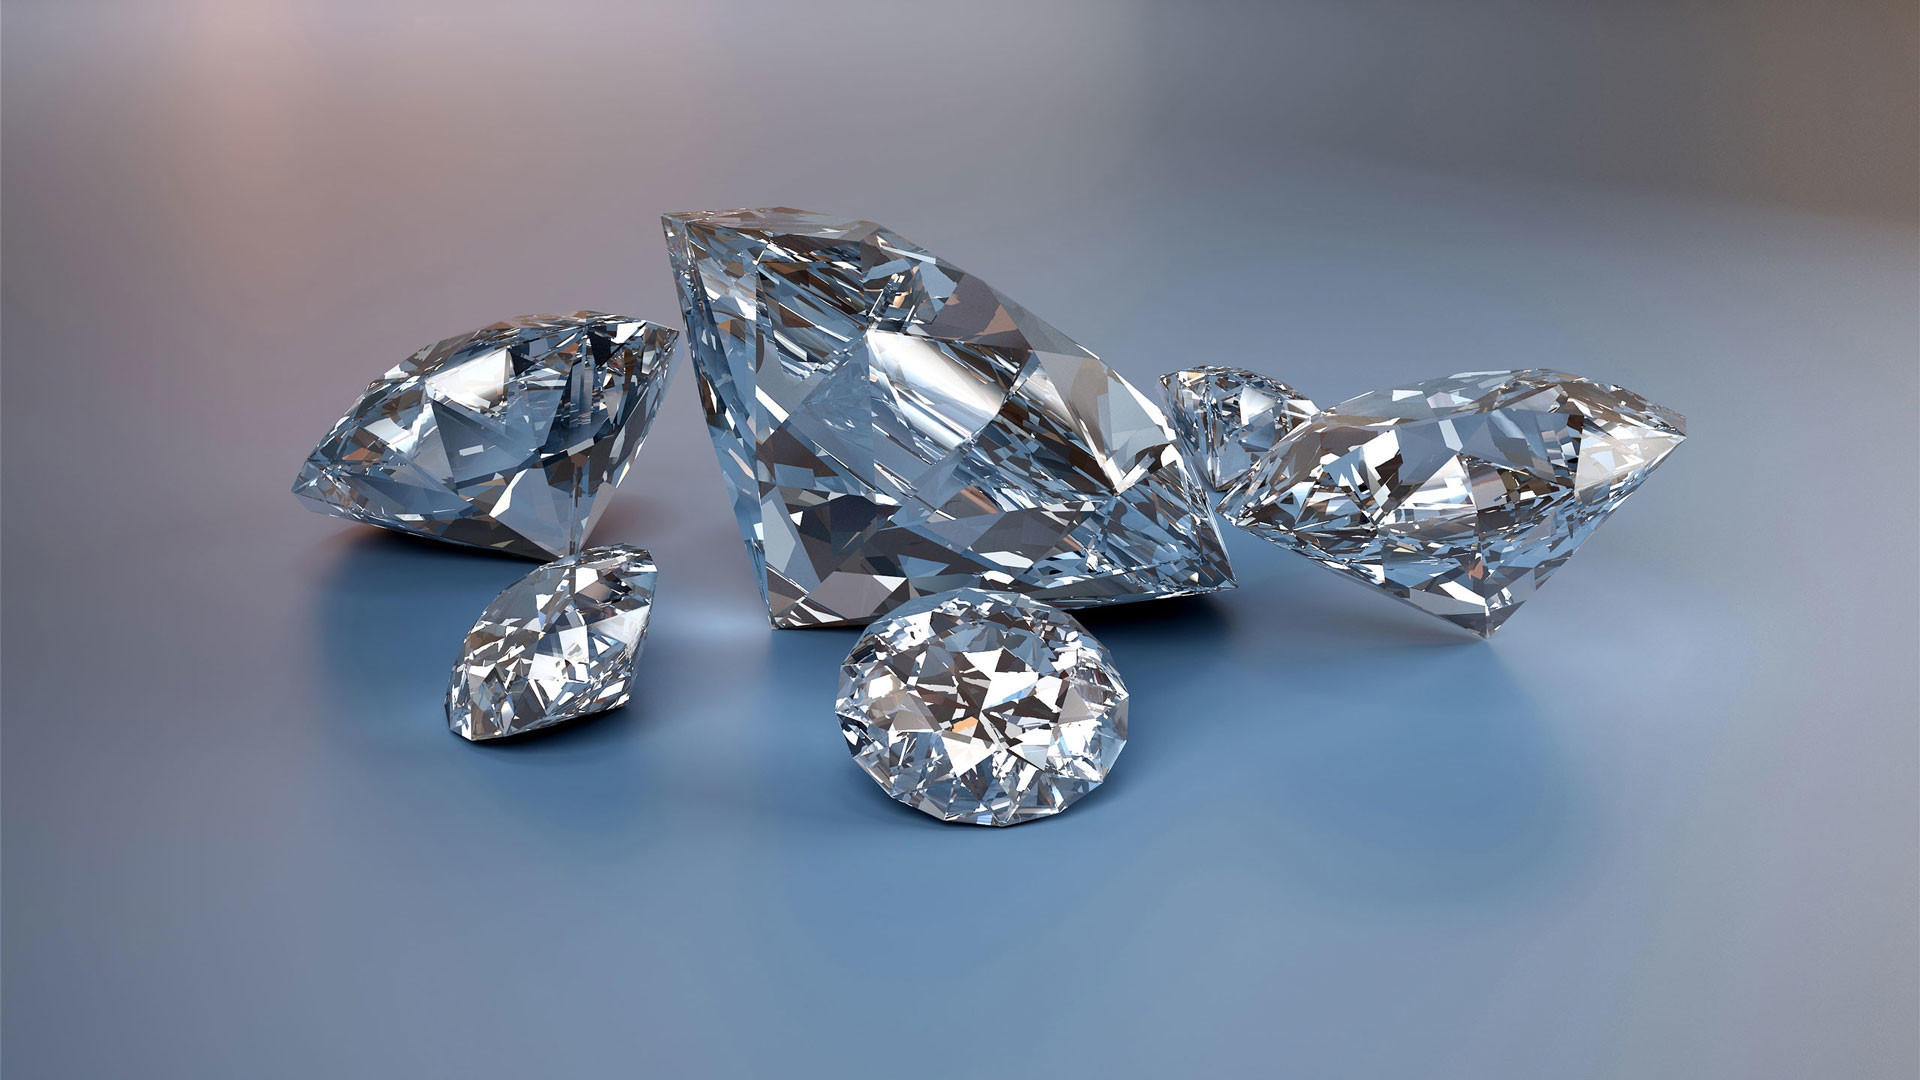 1920x1080 Diamonds HD Wallpaper